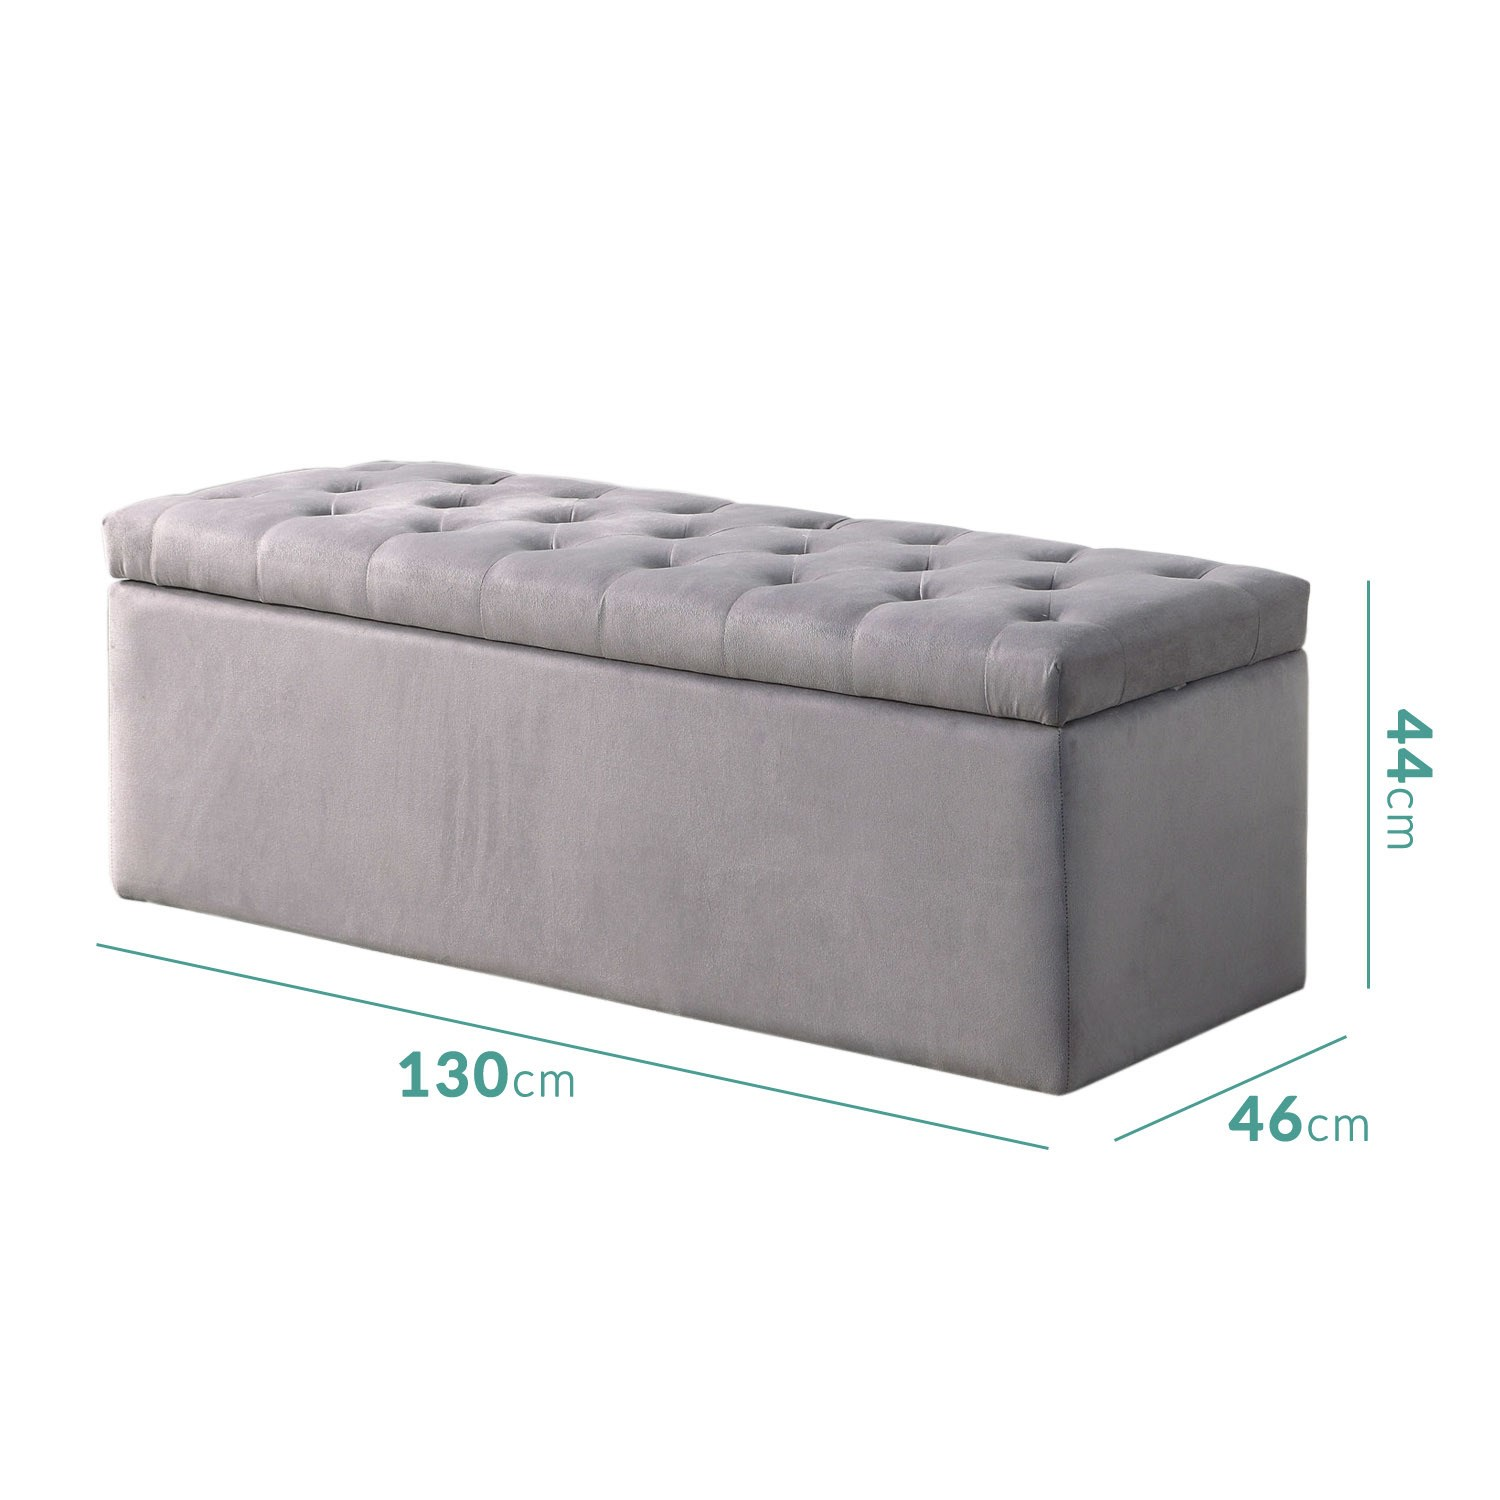 Awe Inspiring Safina Ottoman Storage Box In Grey Velvet Machost Co Dining Chair Design Ideas Machostcouk